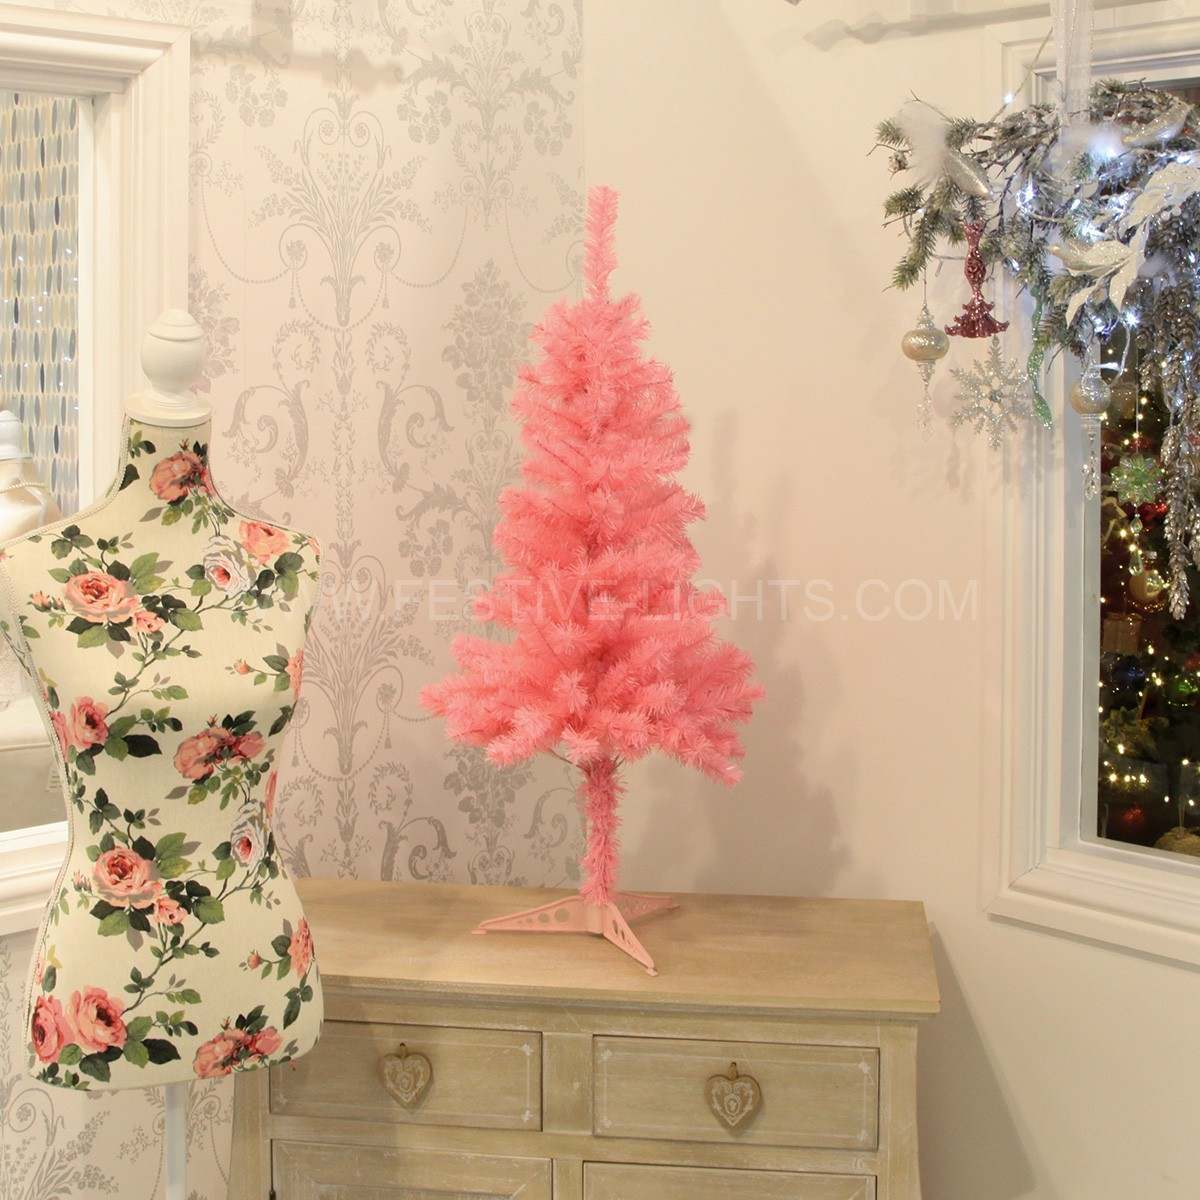 3ft Pink Artificial Christmas Tree